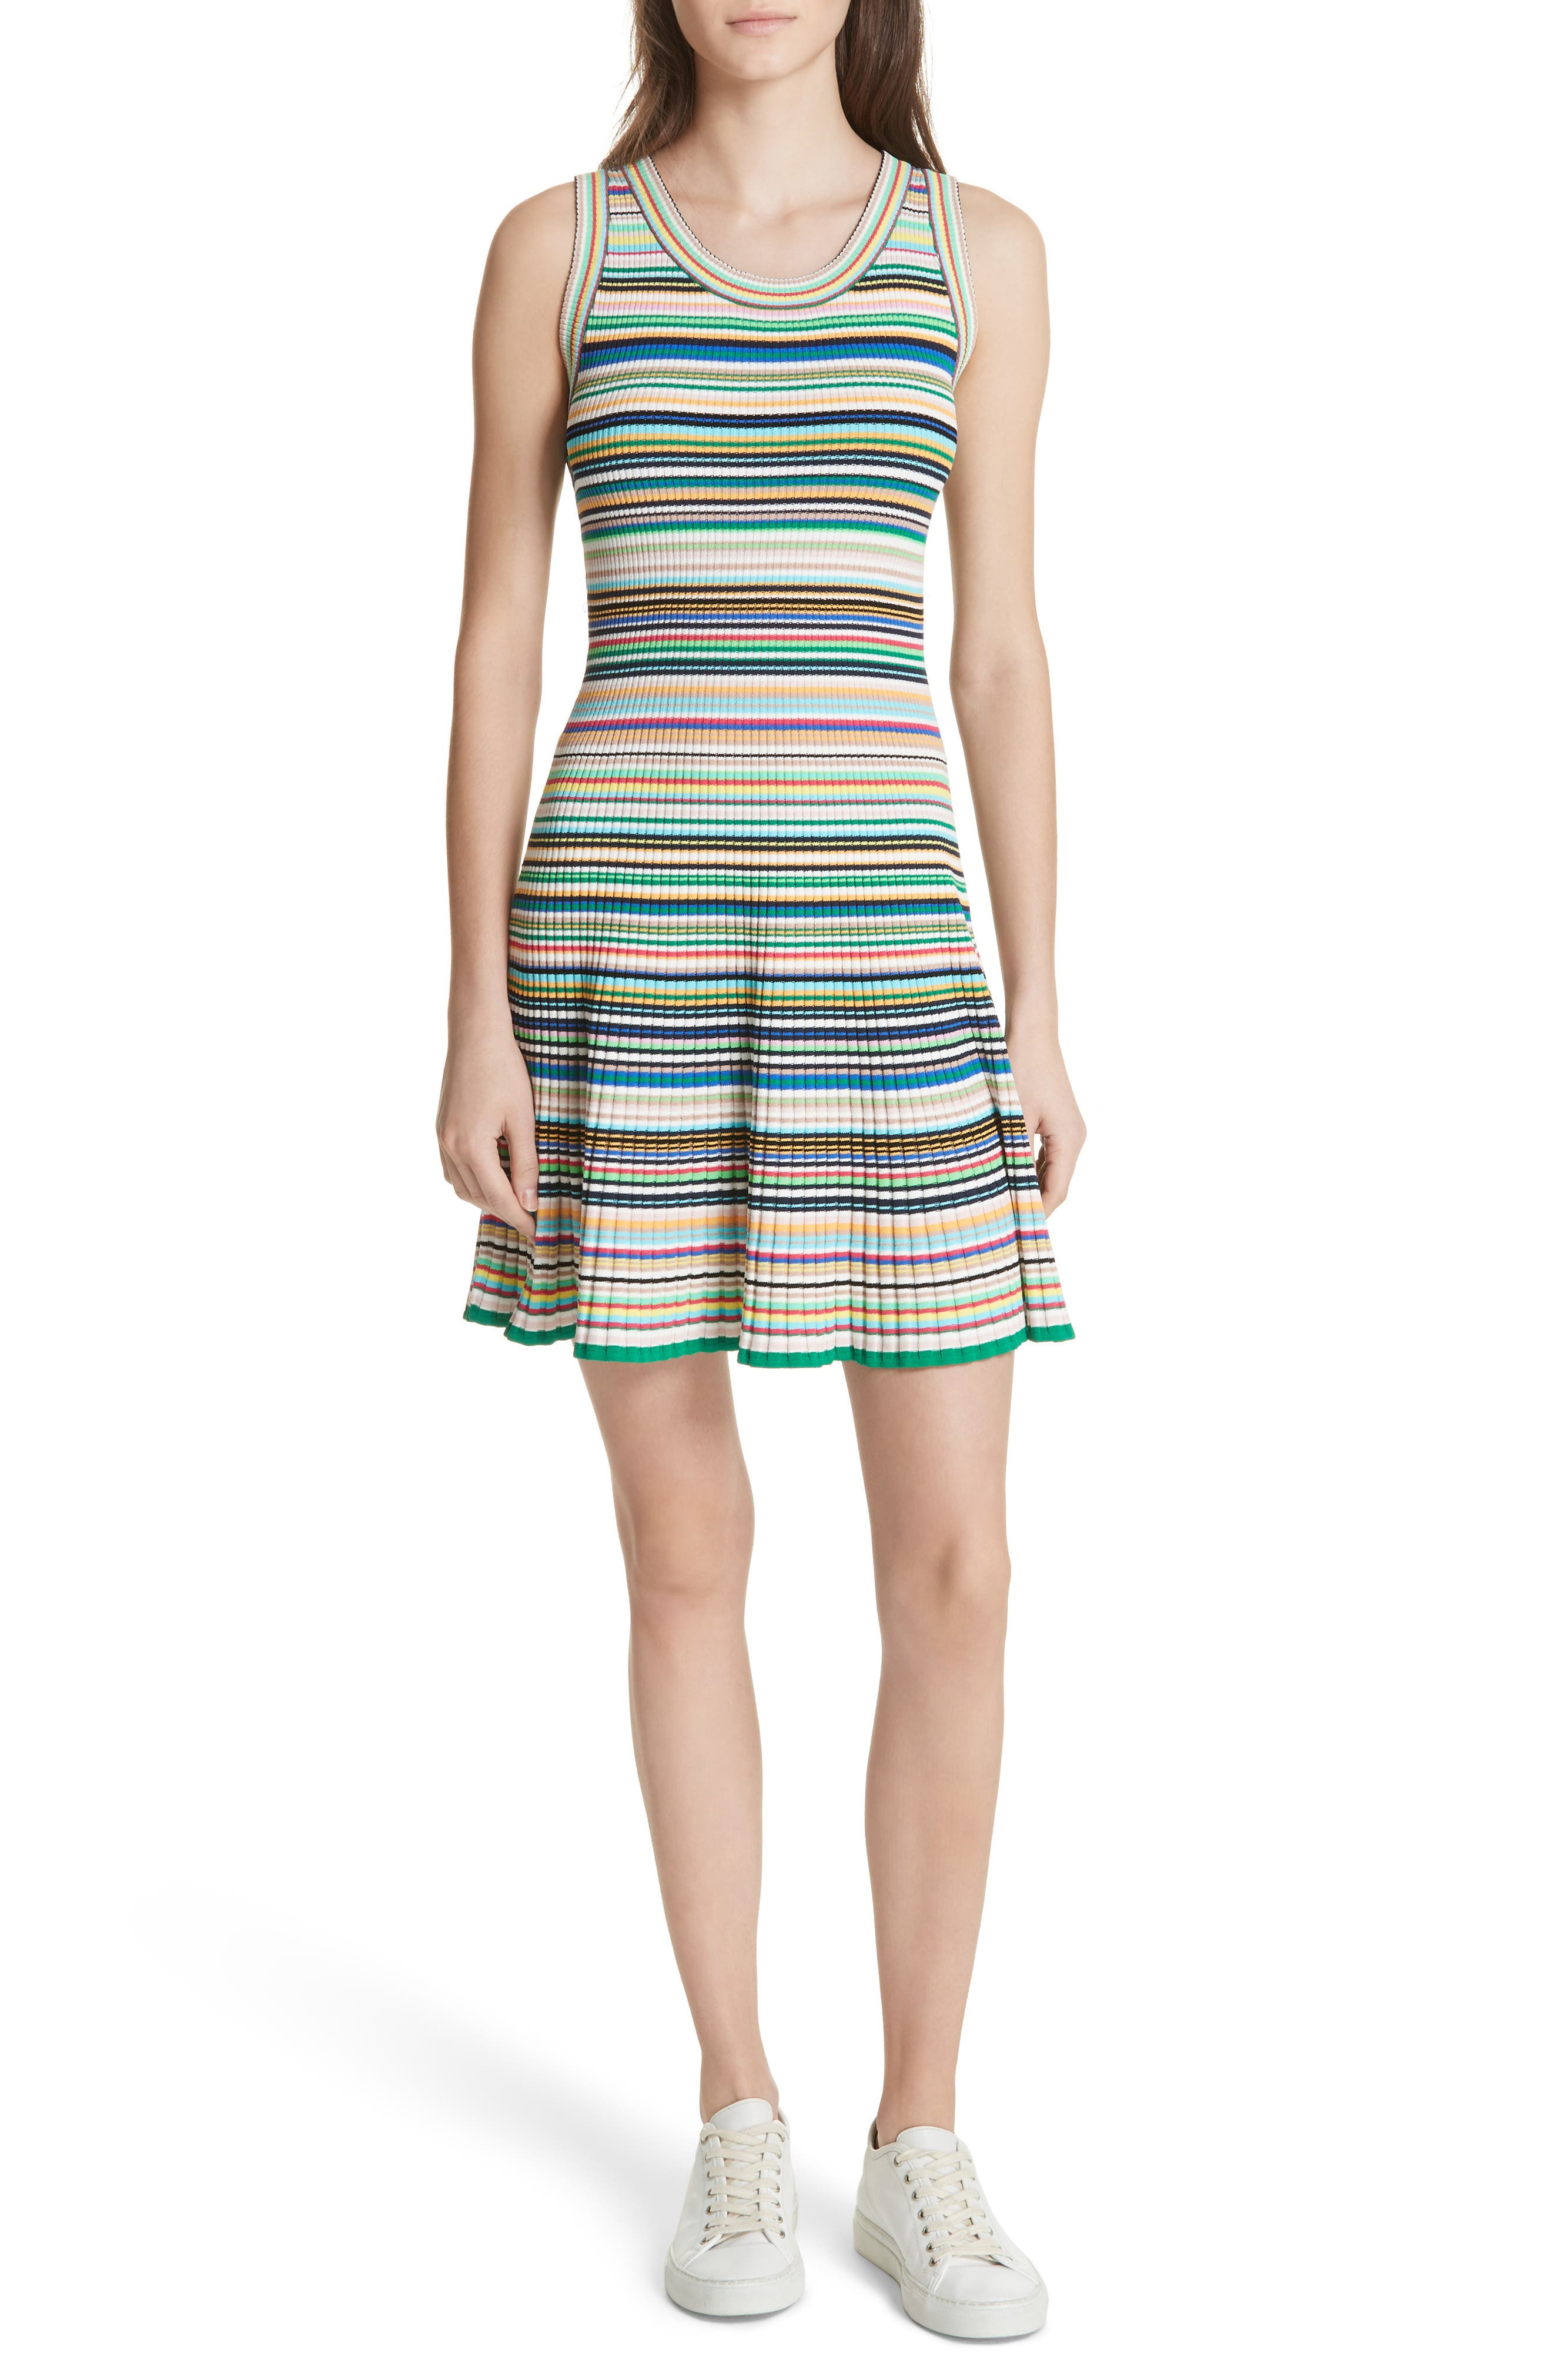 Alternate Image 1 Selected - Milly Microstripe Knit Fit & Flare Dress